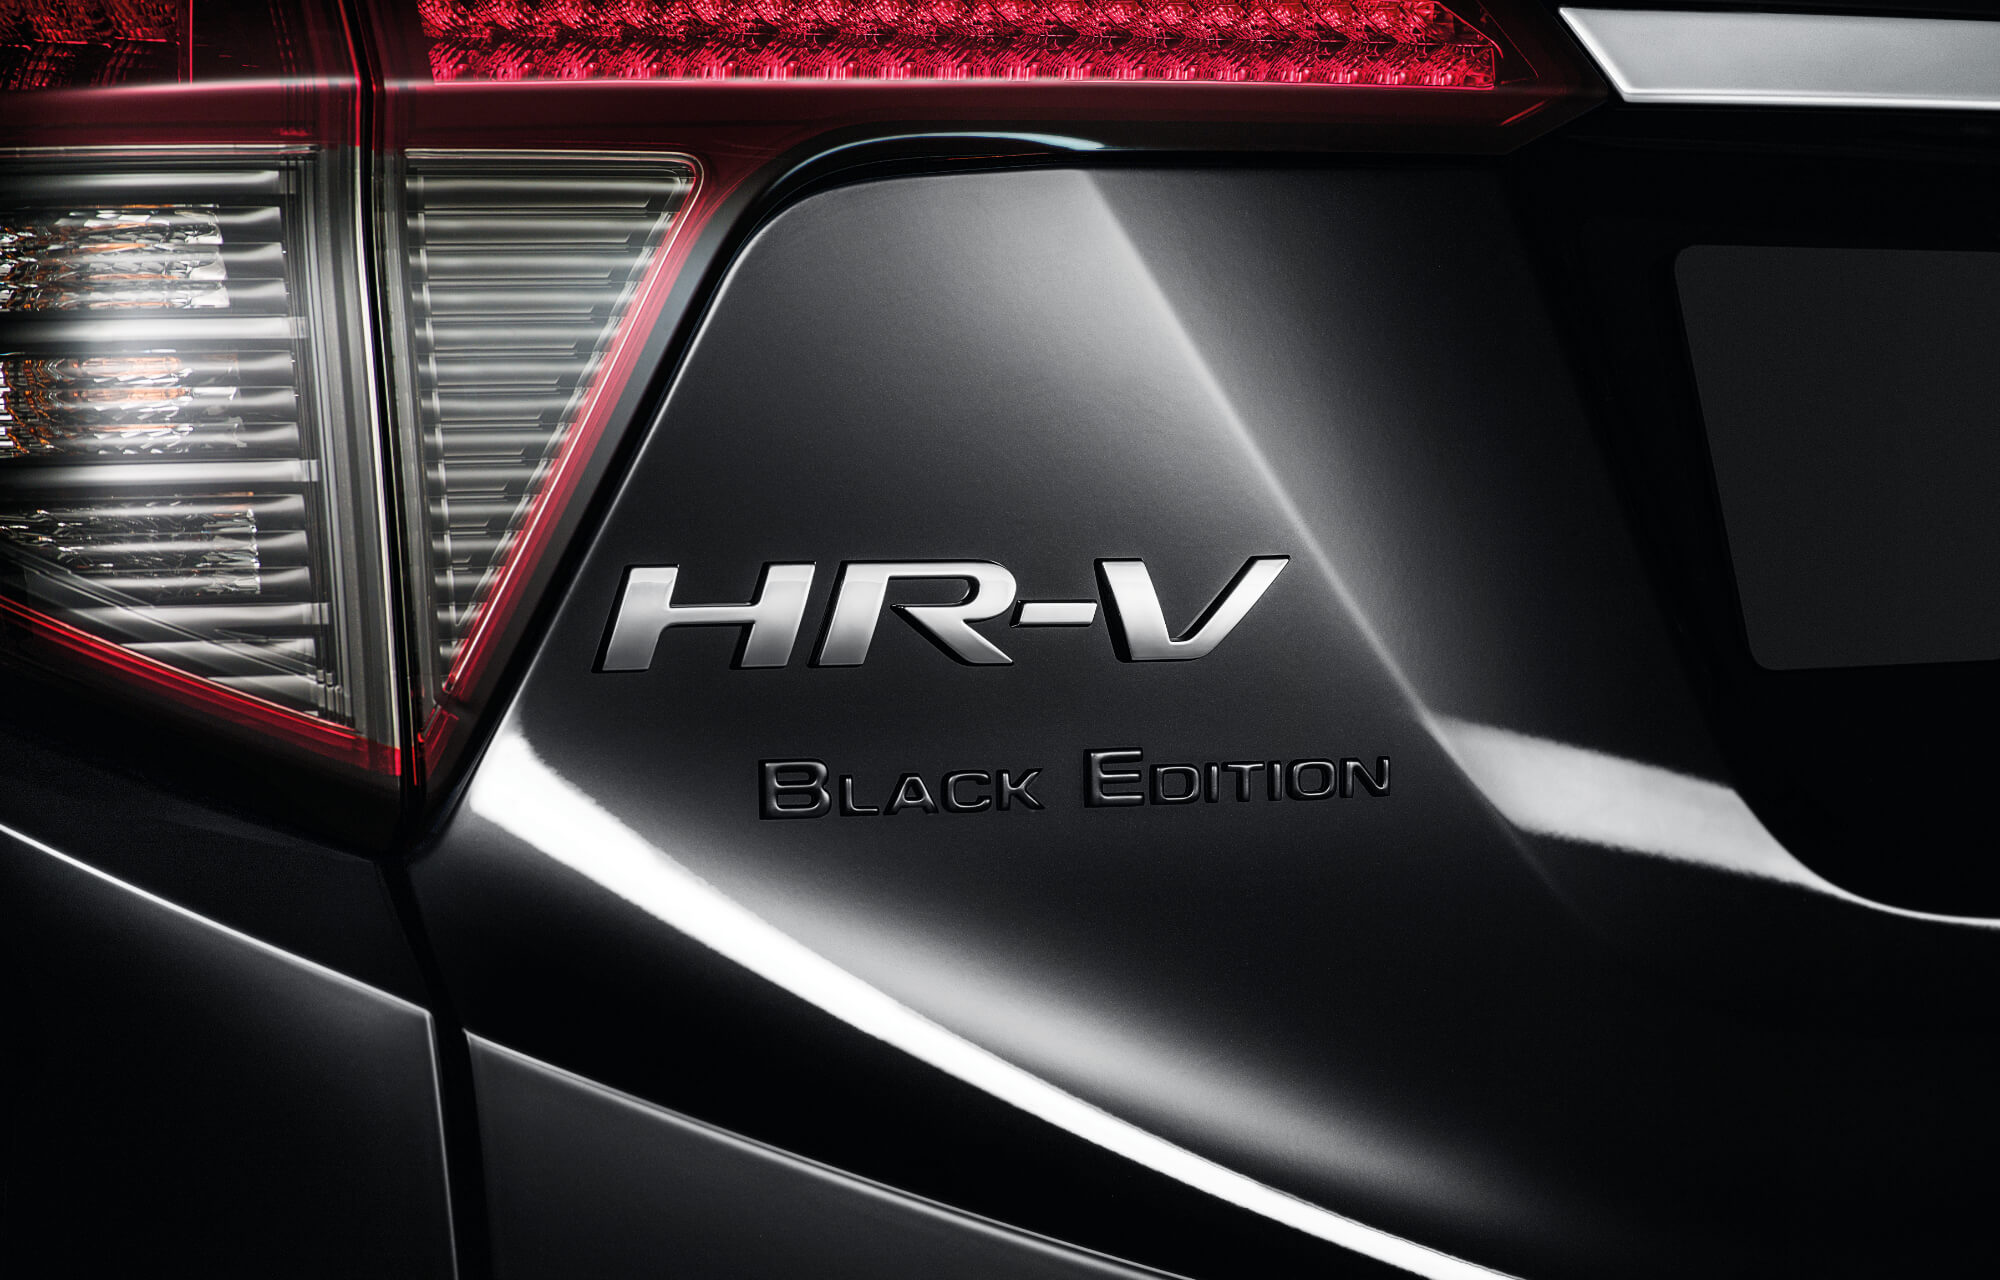 HR-V Black Edition Emblem